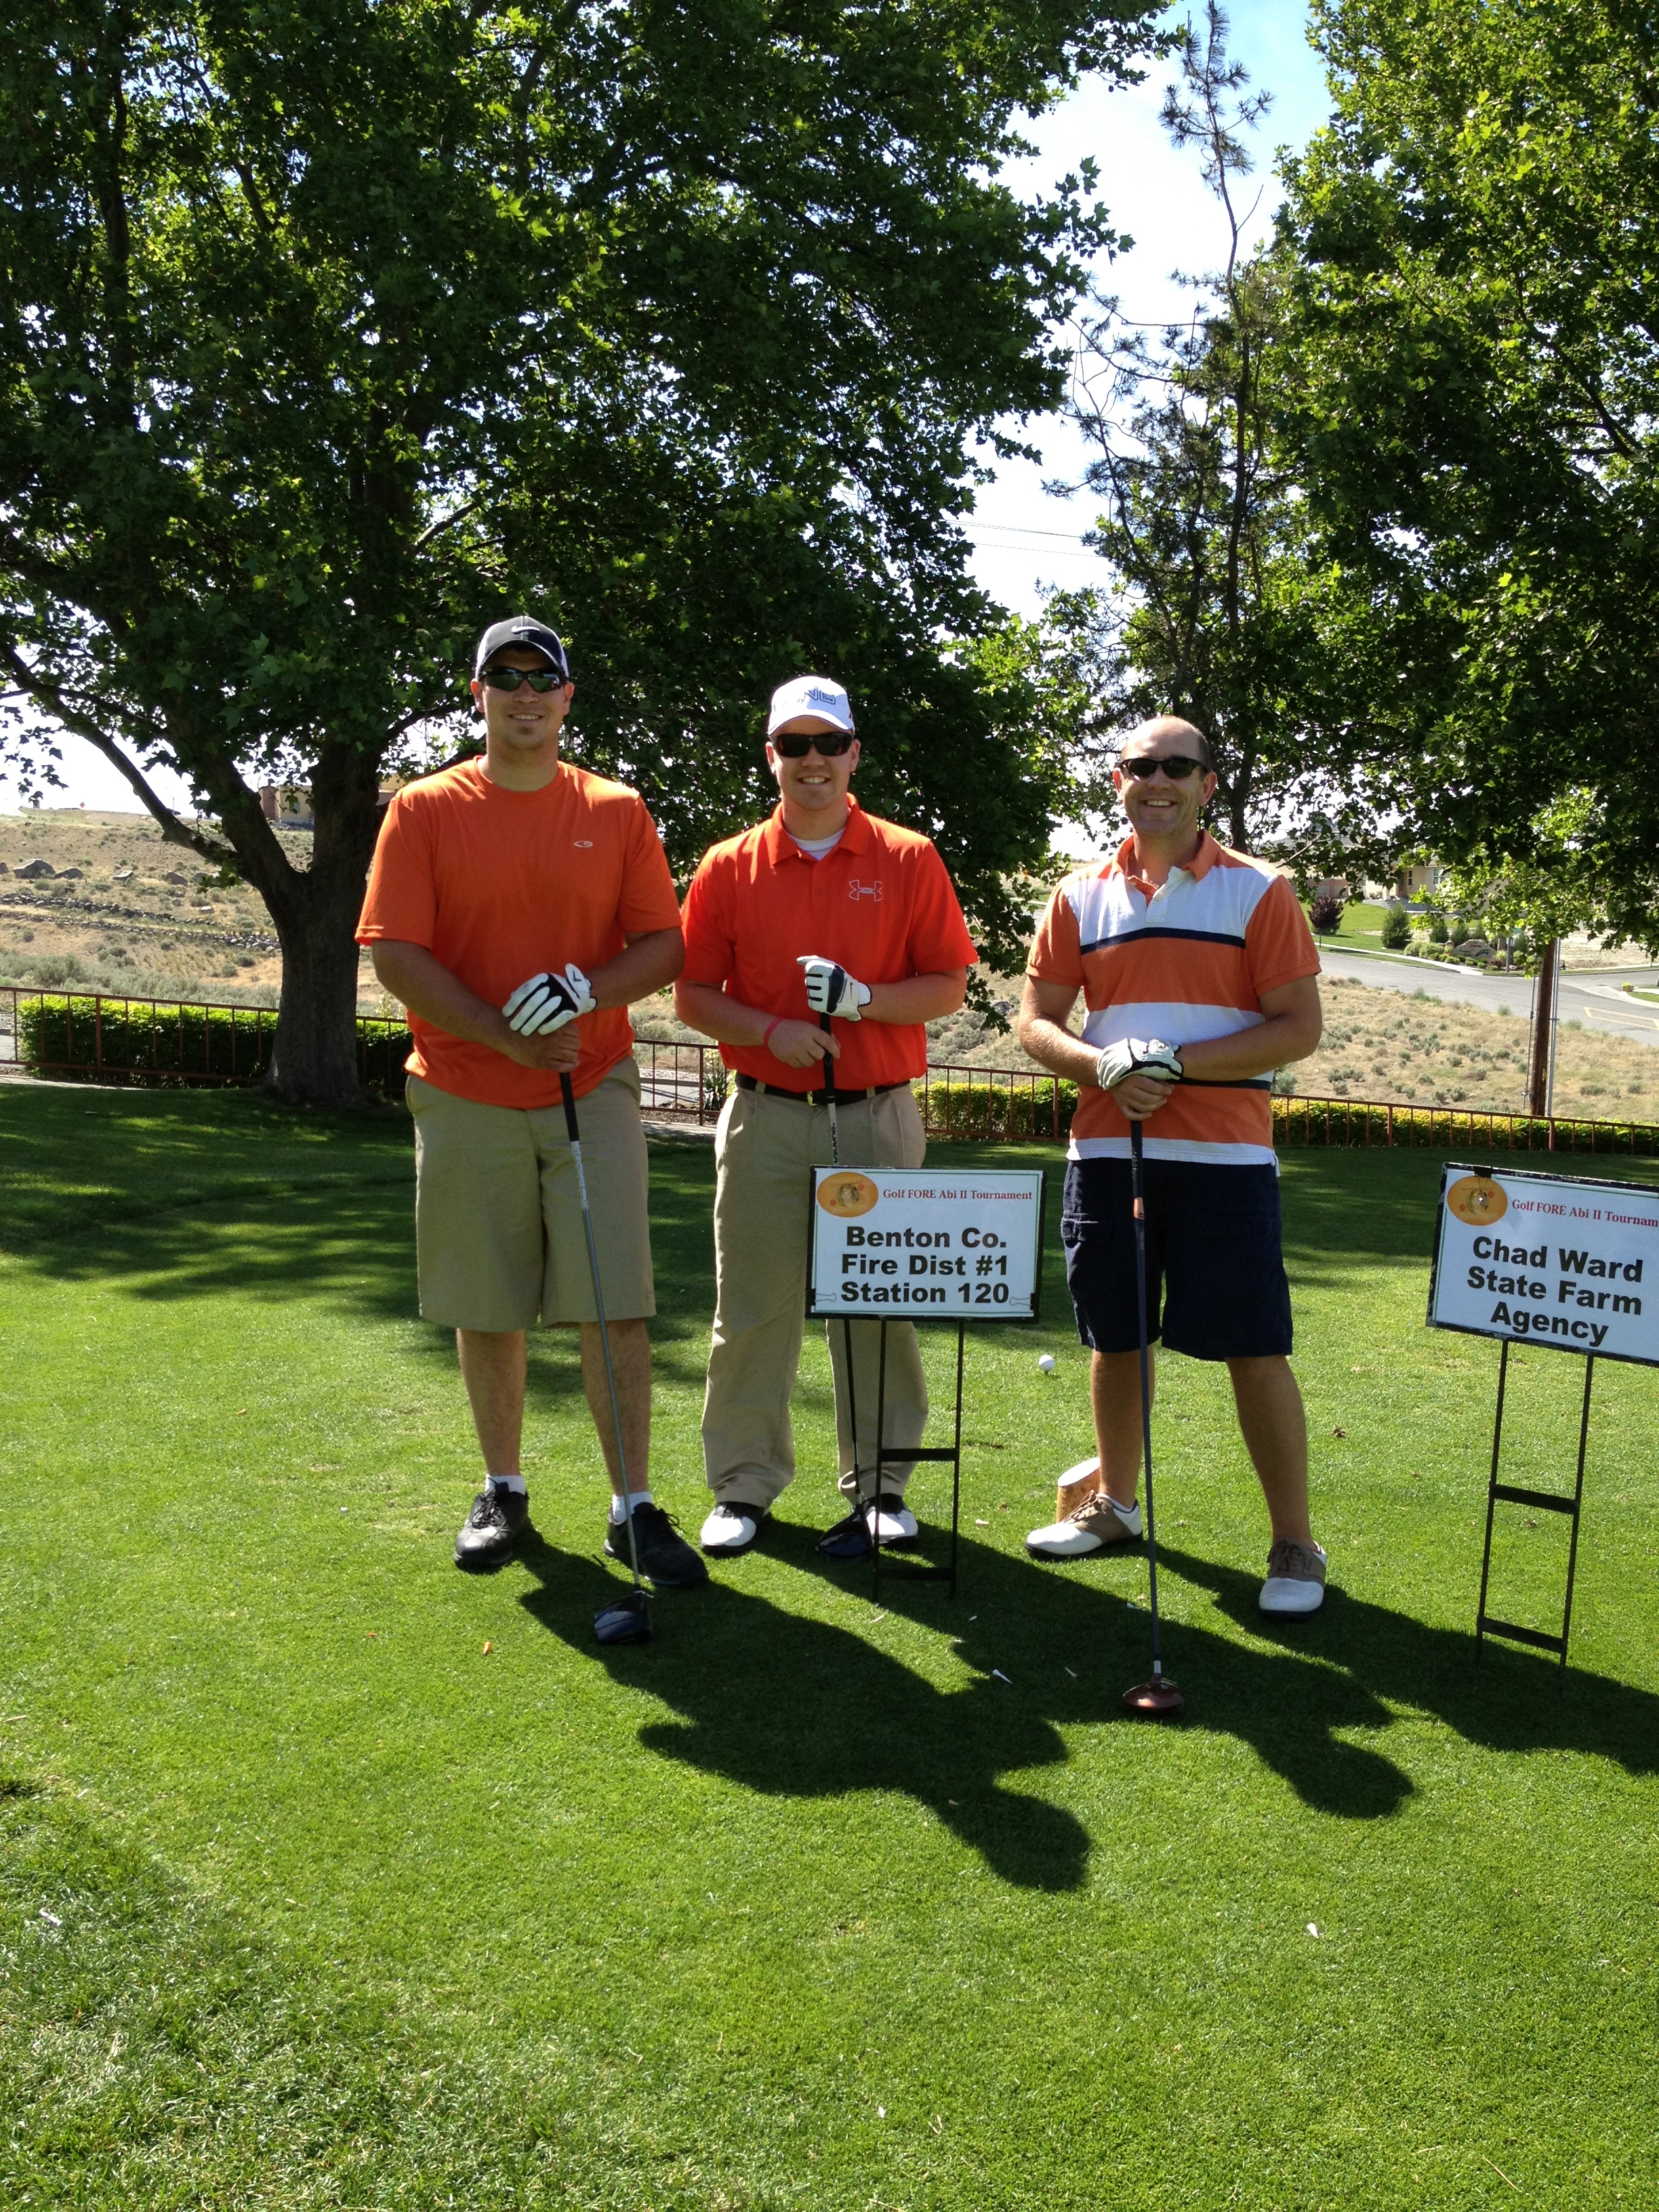 Residents Participating as a team in a local charity golf tournament.